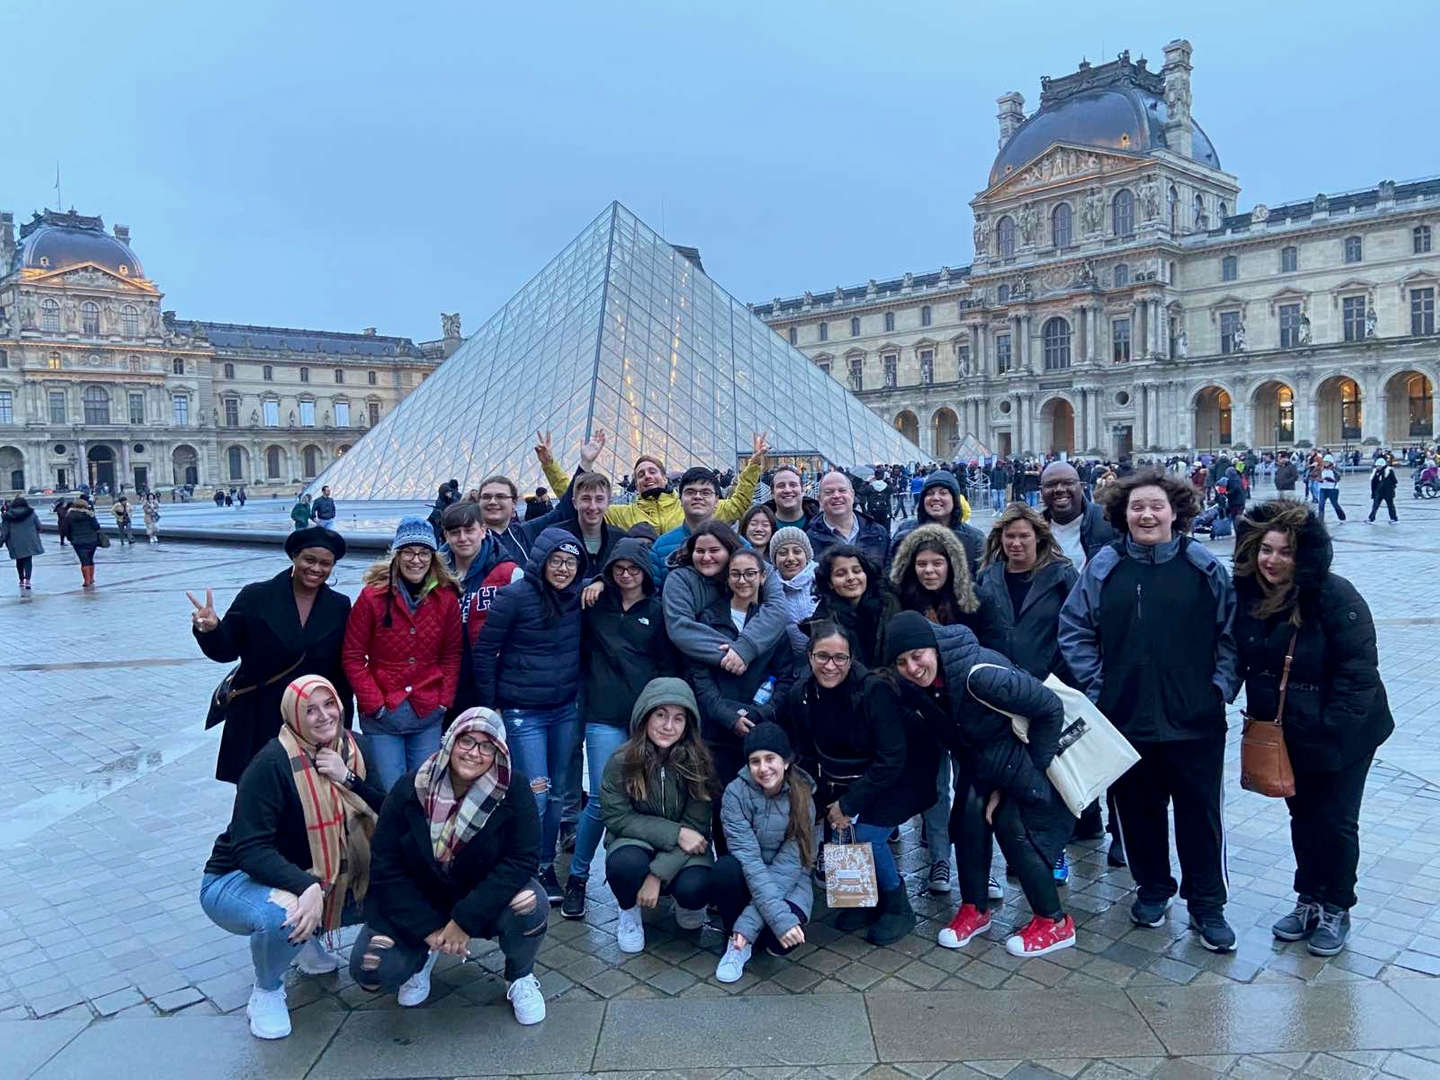 students in front of Louvre museum